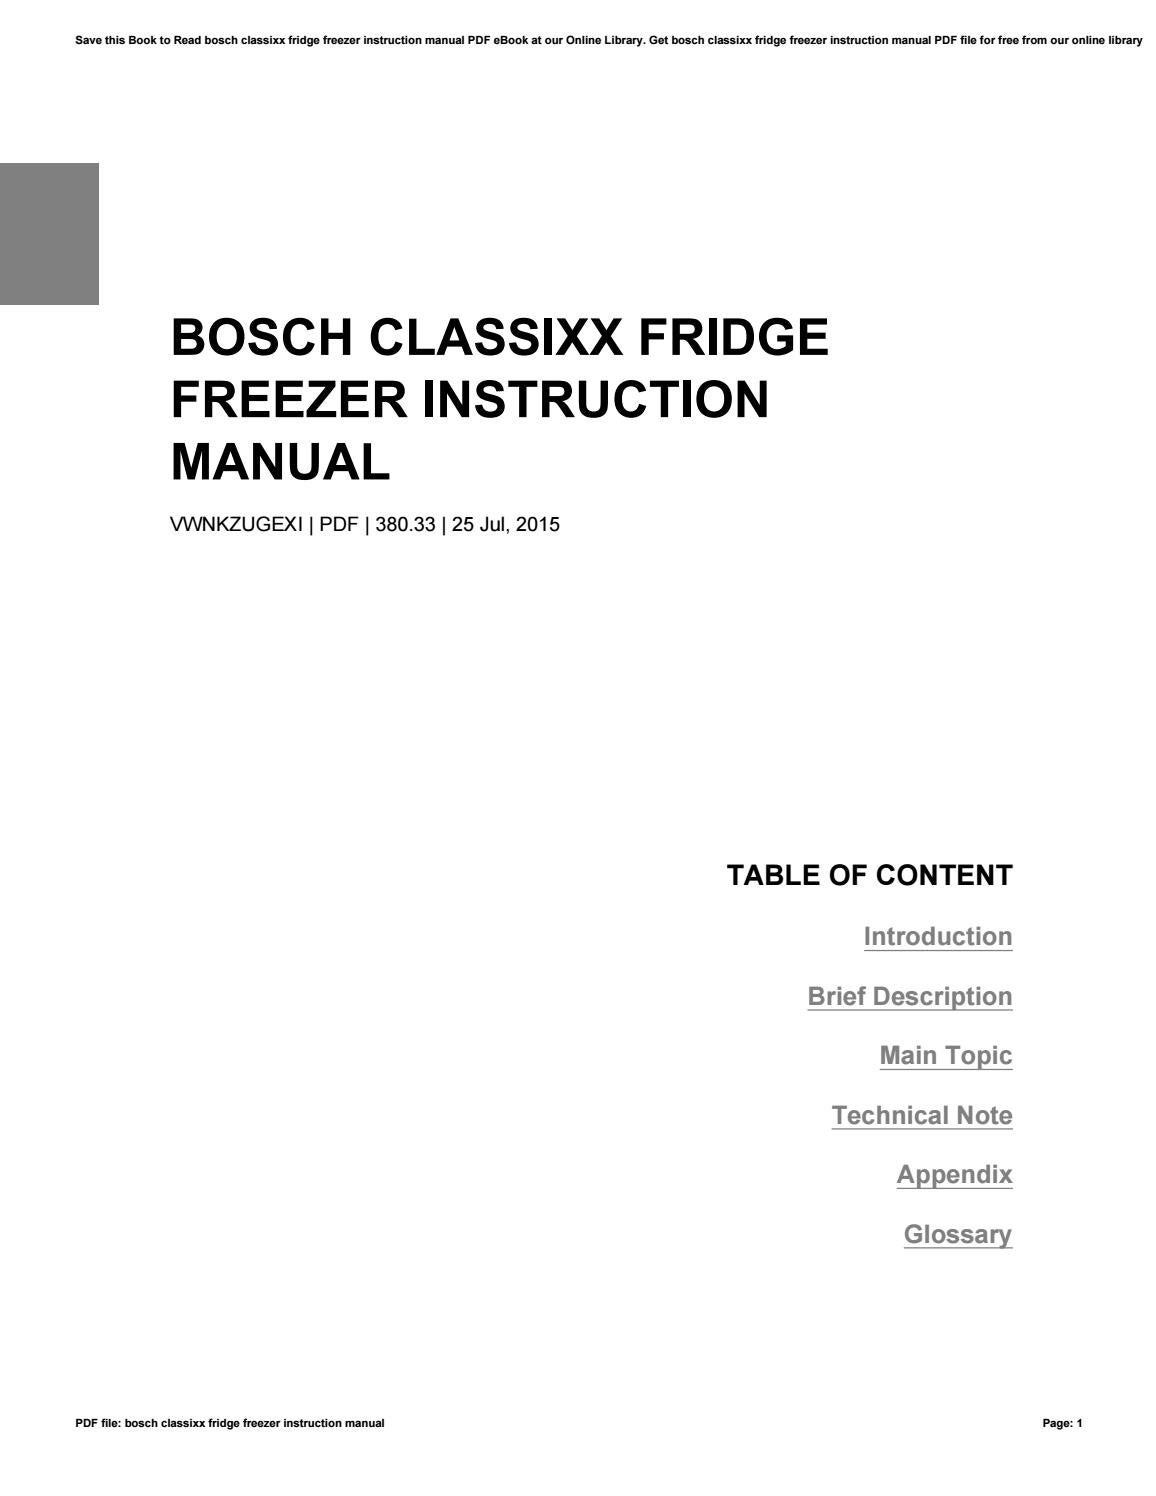 Bosch classixx fridge freezer instruction manual